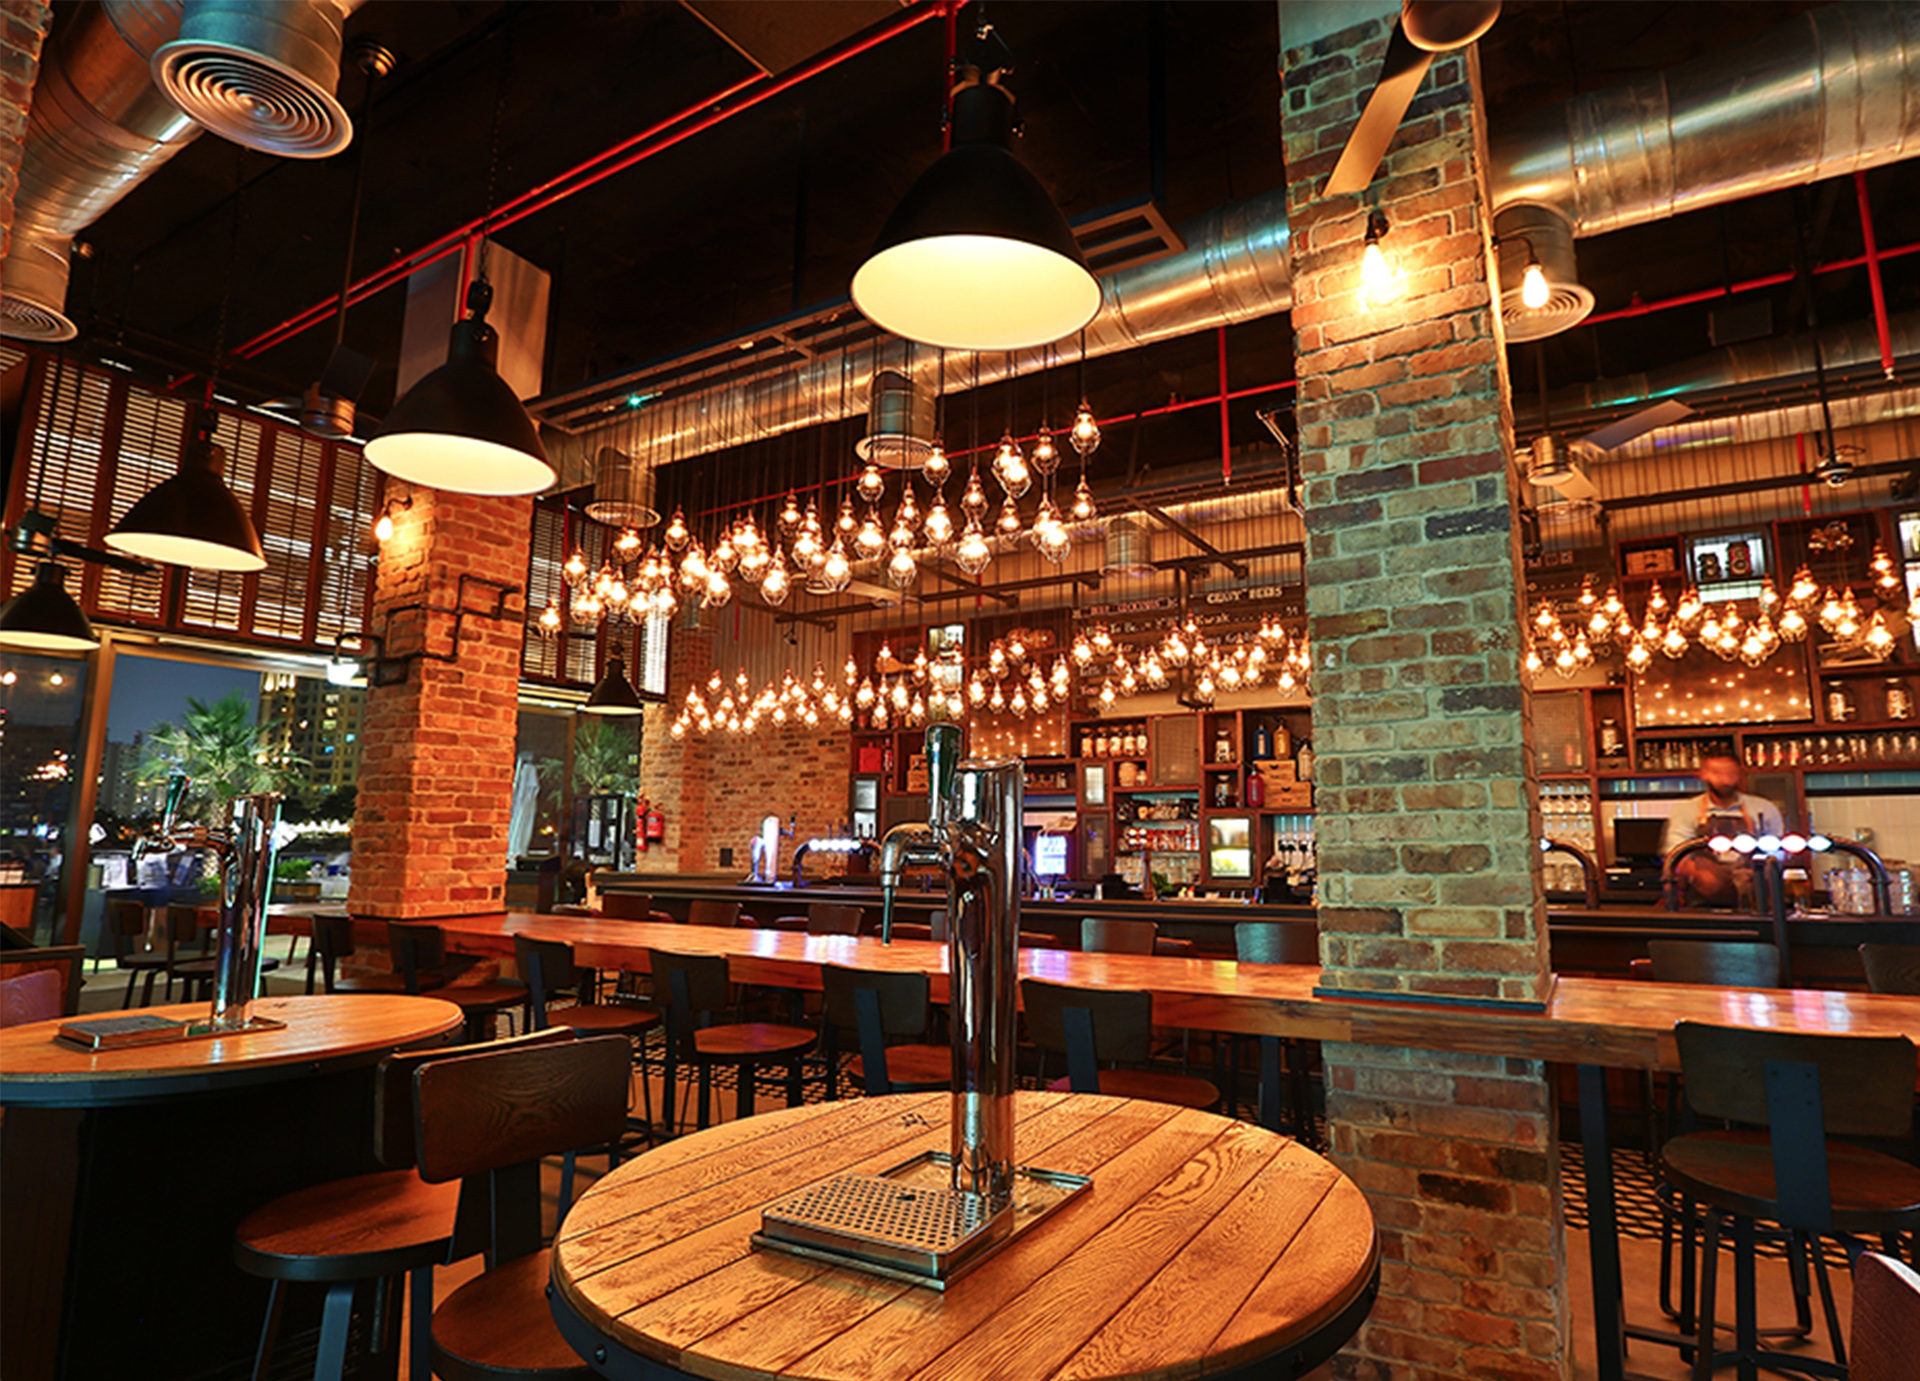 Creneau Interior Design Agency Dubai Middle East Tap House Bar Customised Table Design